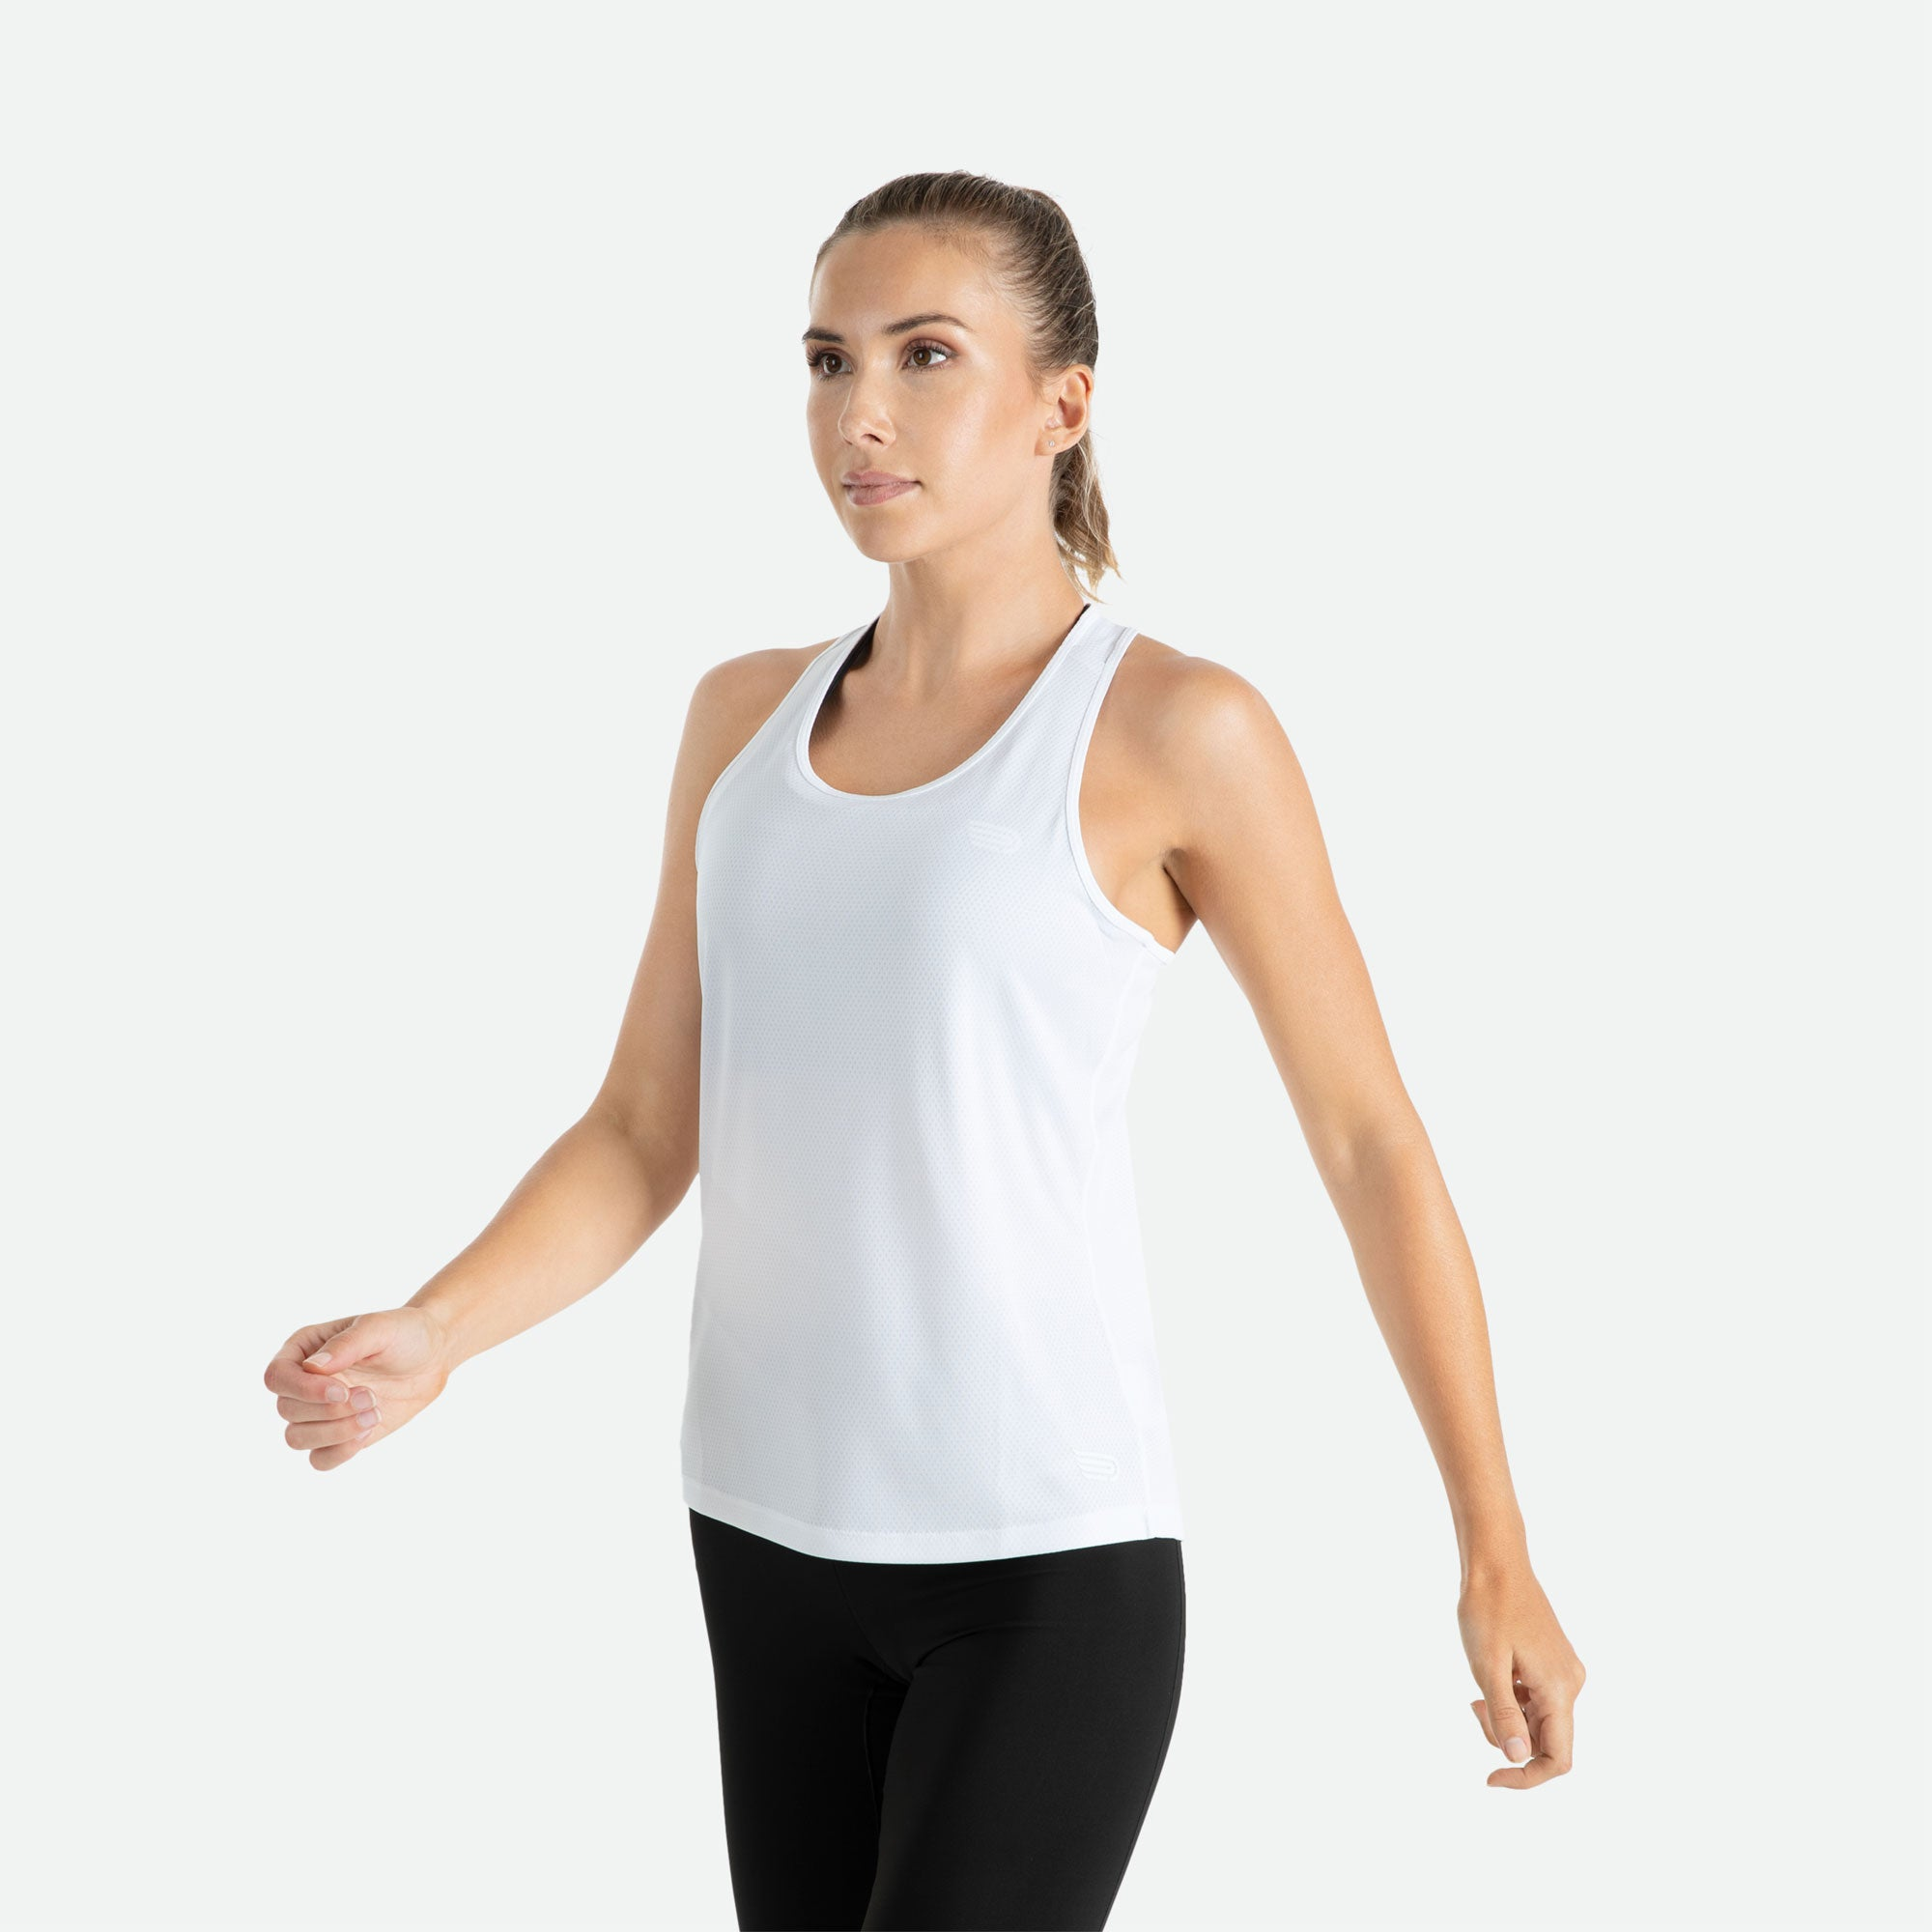 Our Pressio women's white Hāpai razorback singlet features EcoTECH MF fabric which has dual filament recycled polyester yarns from Unifi for superior moisture control to keep you dry.